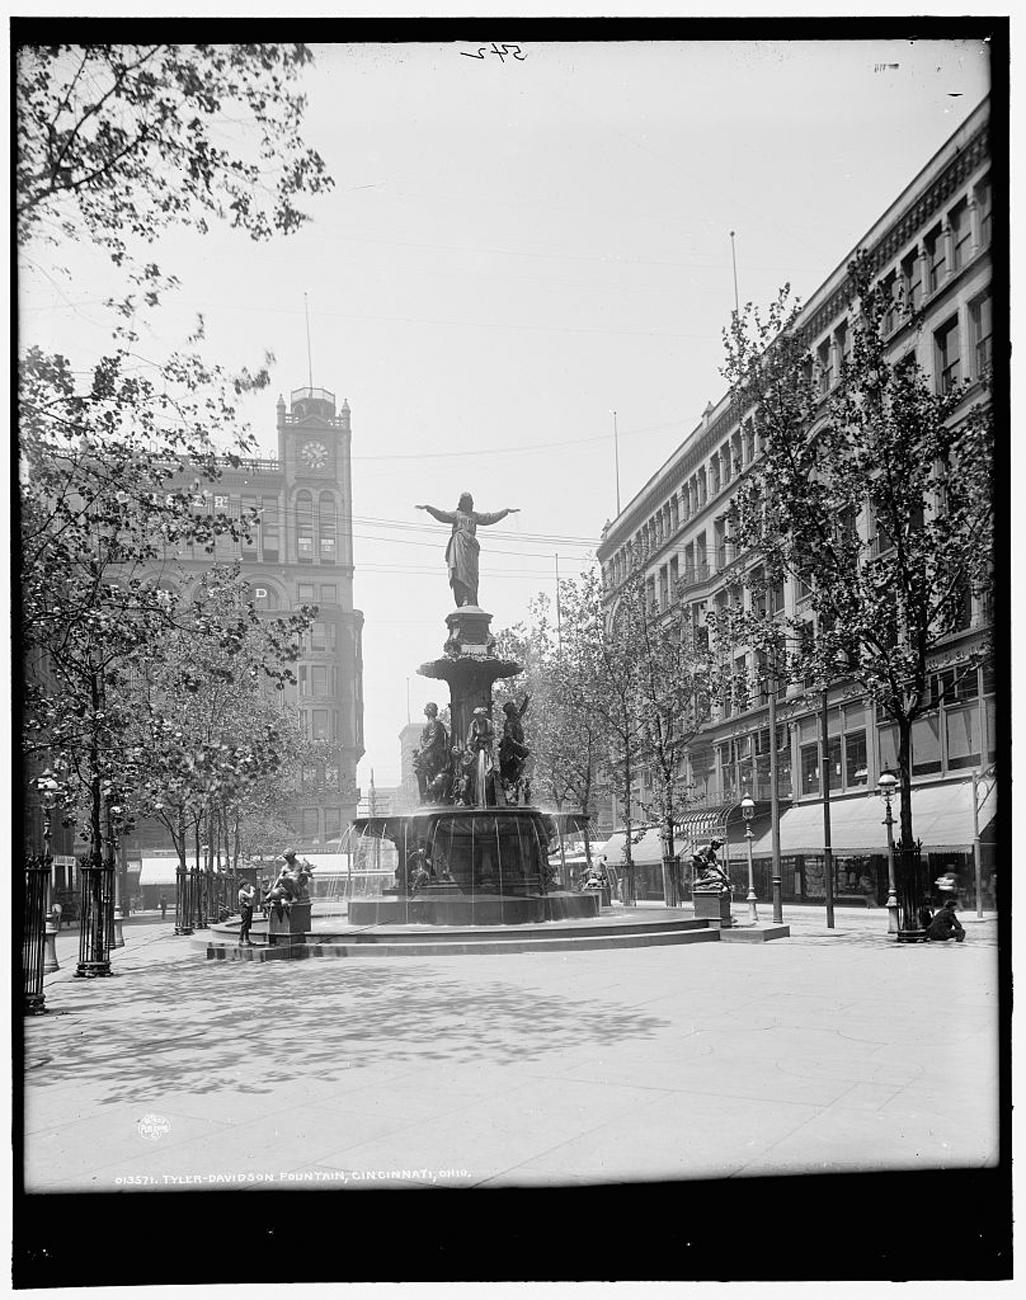 """Tyler-Davidson Fountain, Cincinnati, Ohio"" taken some time between 1900 and 1906{ }/ Image: Detroit Publishing Co. accessed via the Library of Congress // Published: 3.4.19"